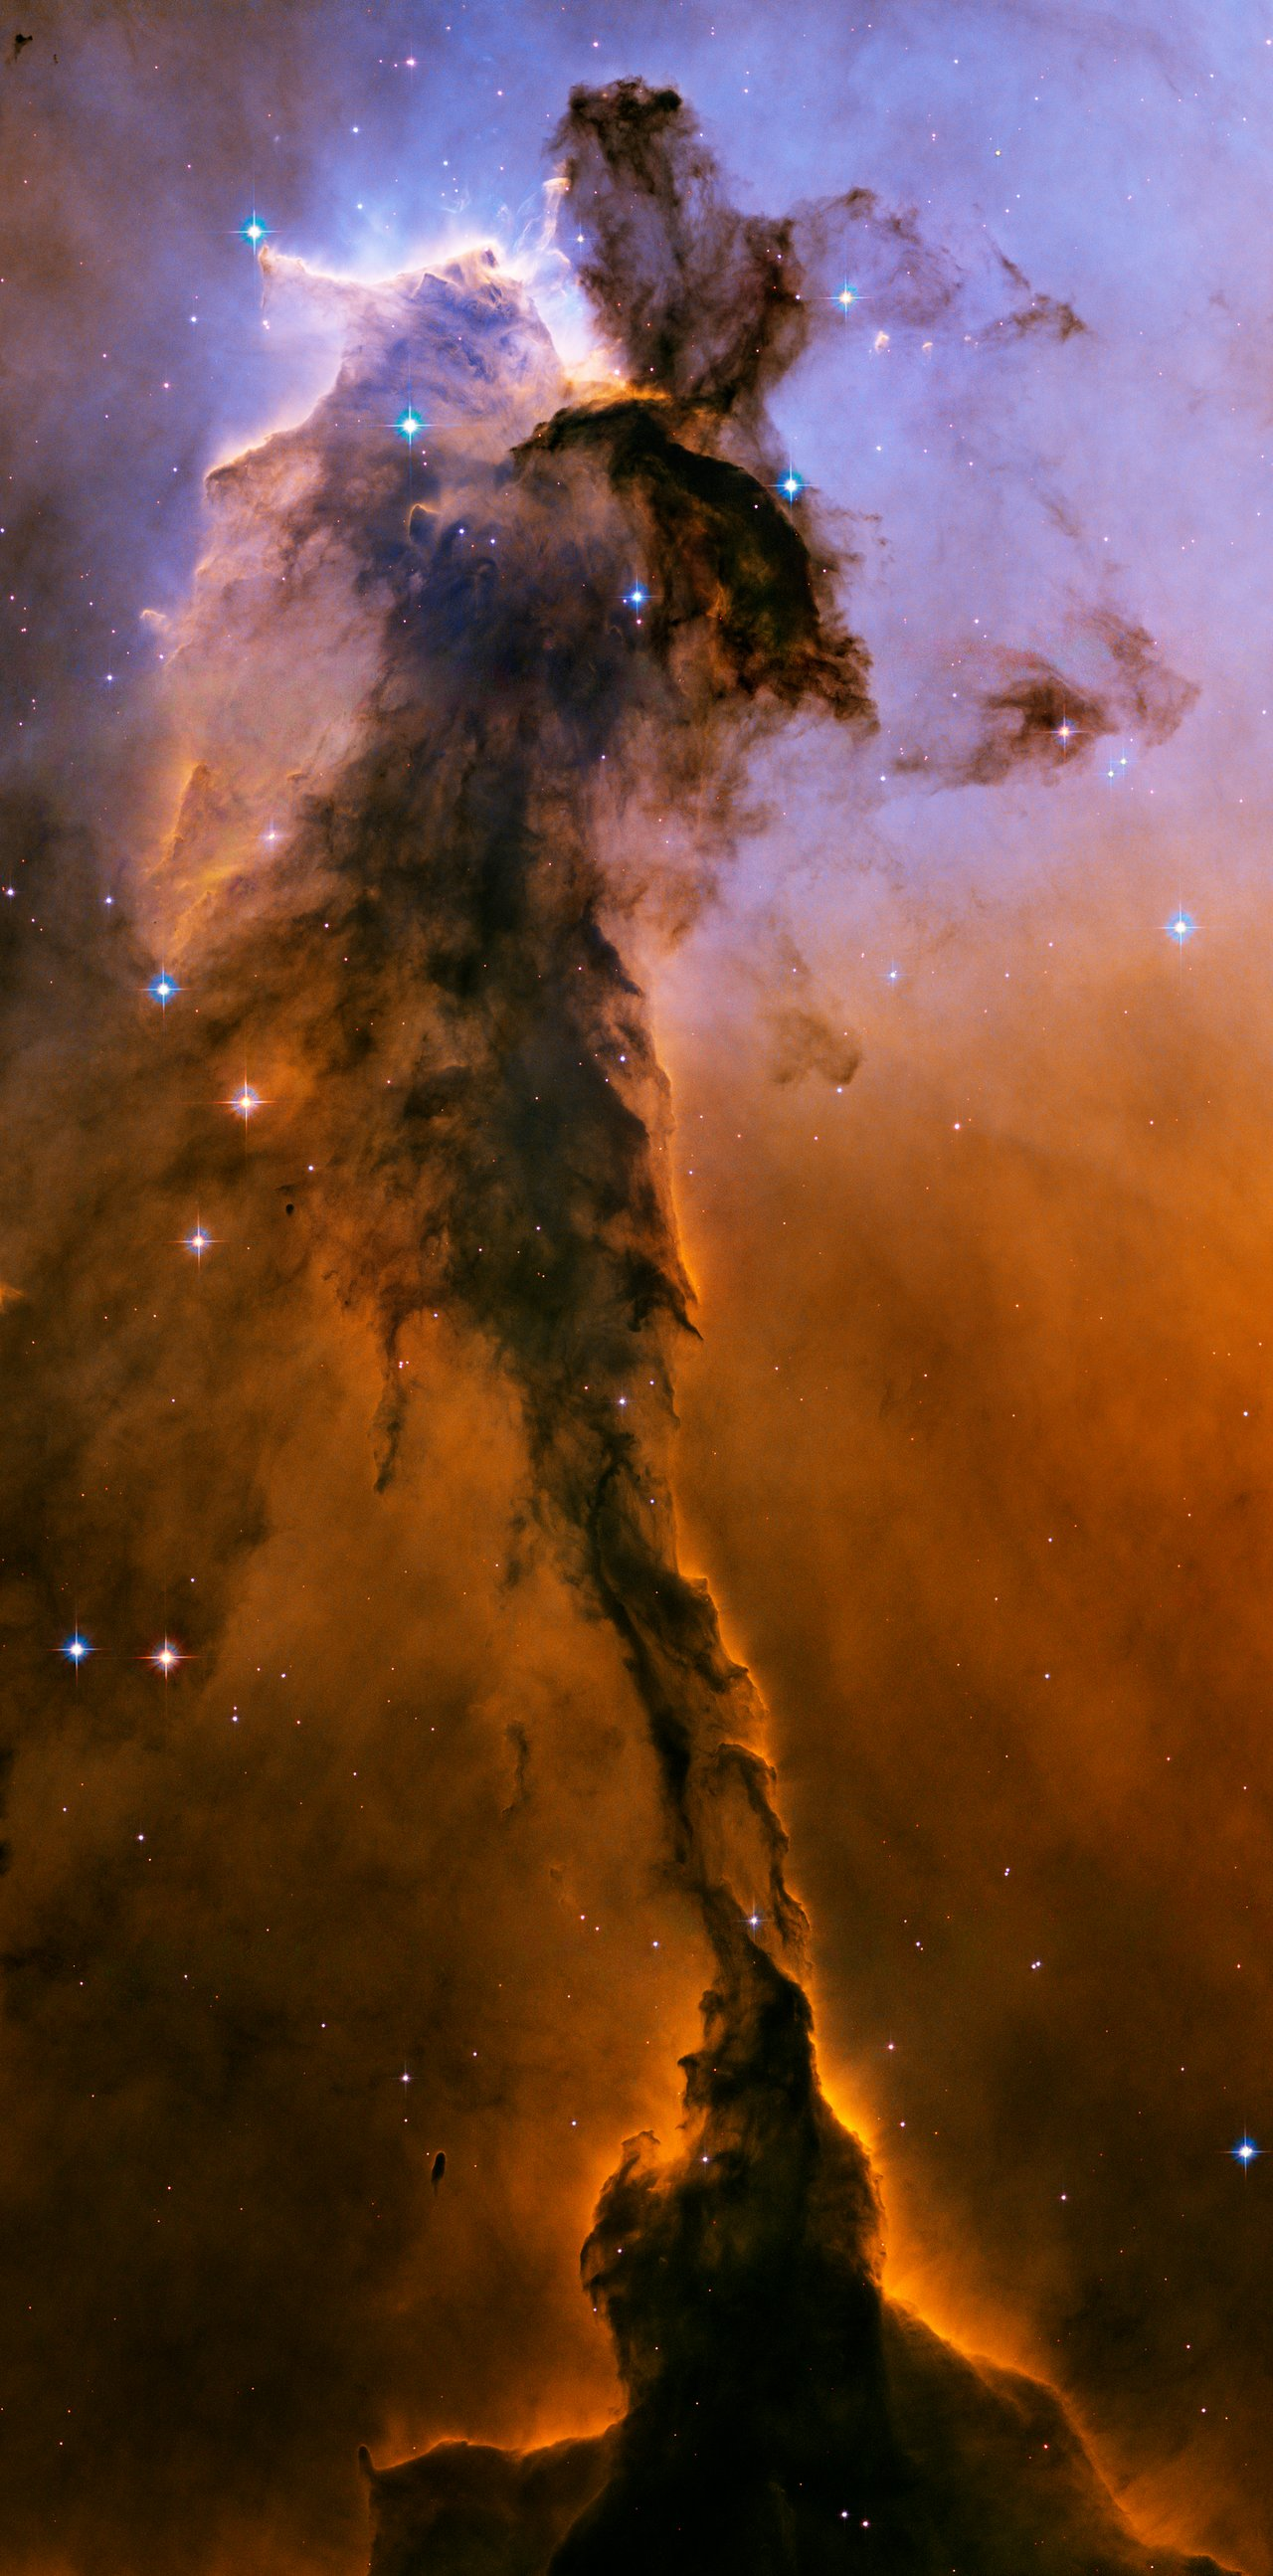 hubble space telescope star 2 - photo #20